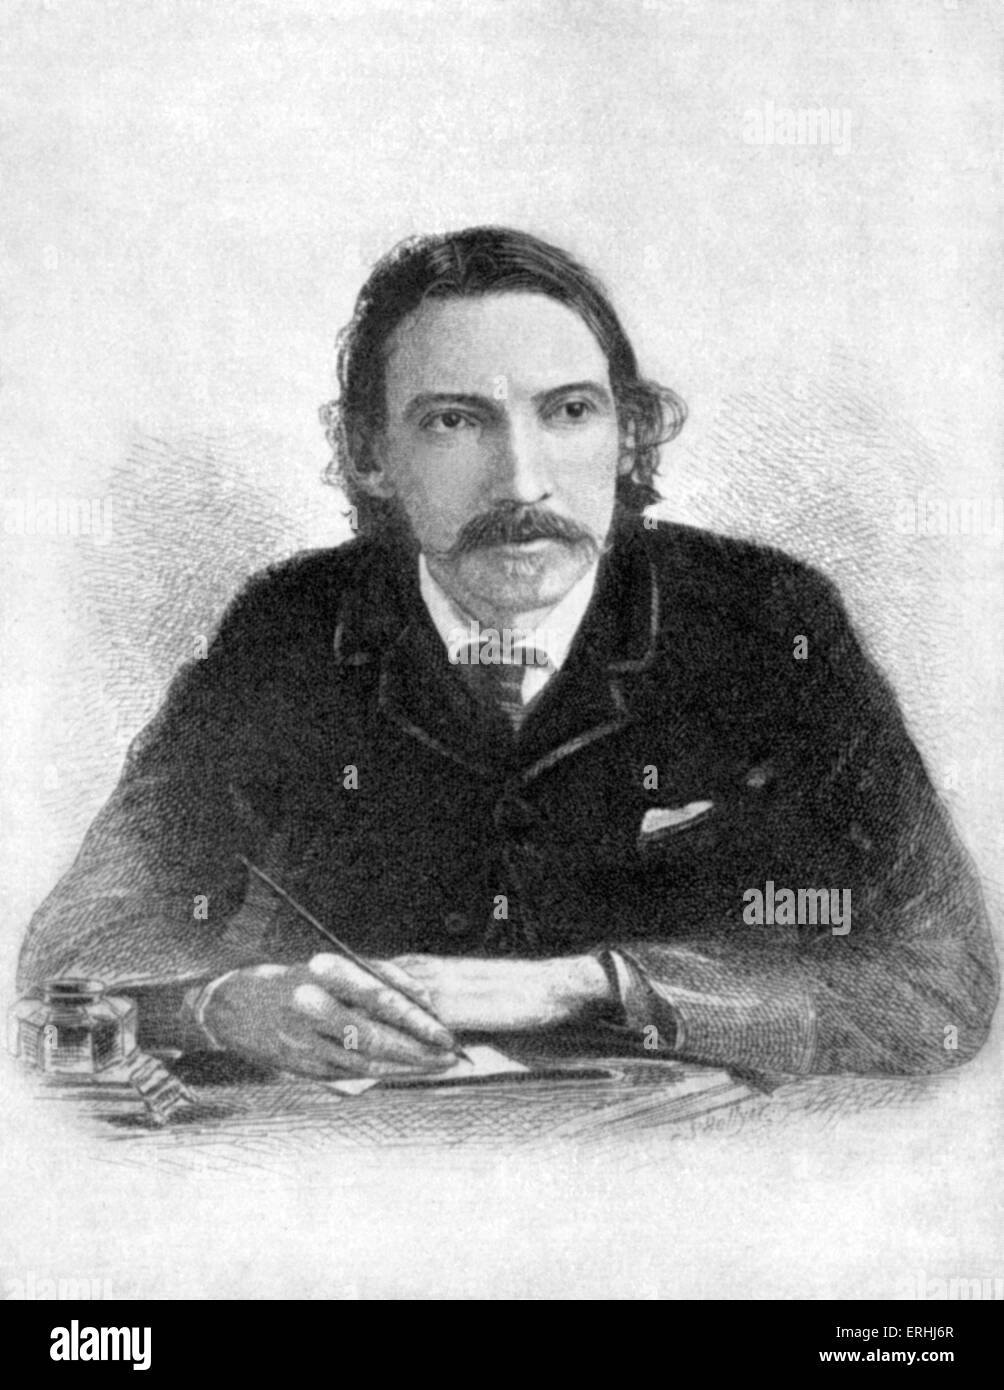 Robert Louis Stevenson - From etching by S. Hollyer  Scottish writer 13 November 1850 - 3 December 1894. - Stock Image